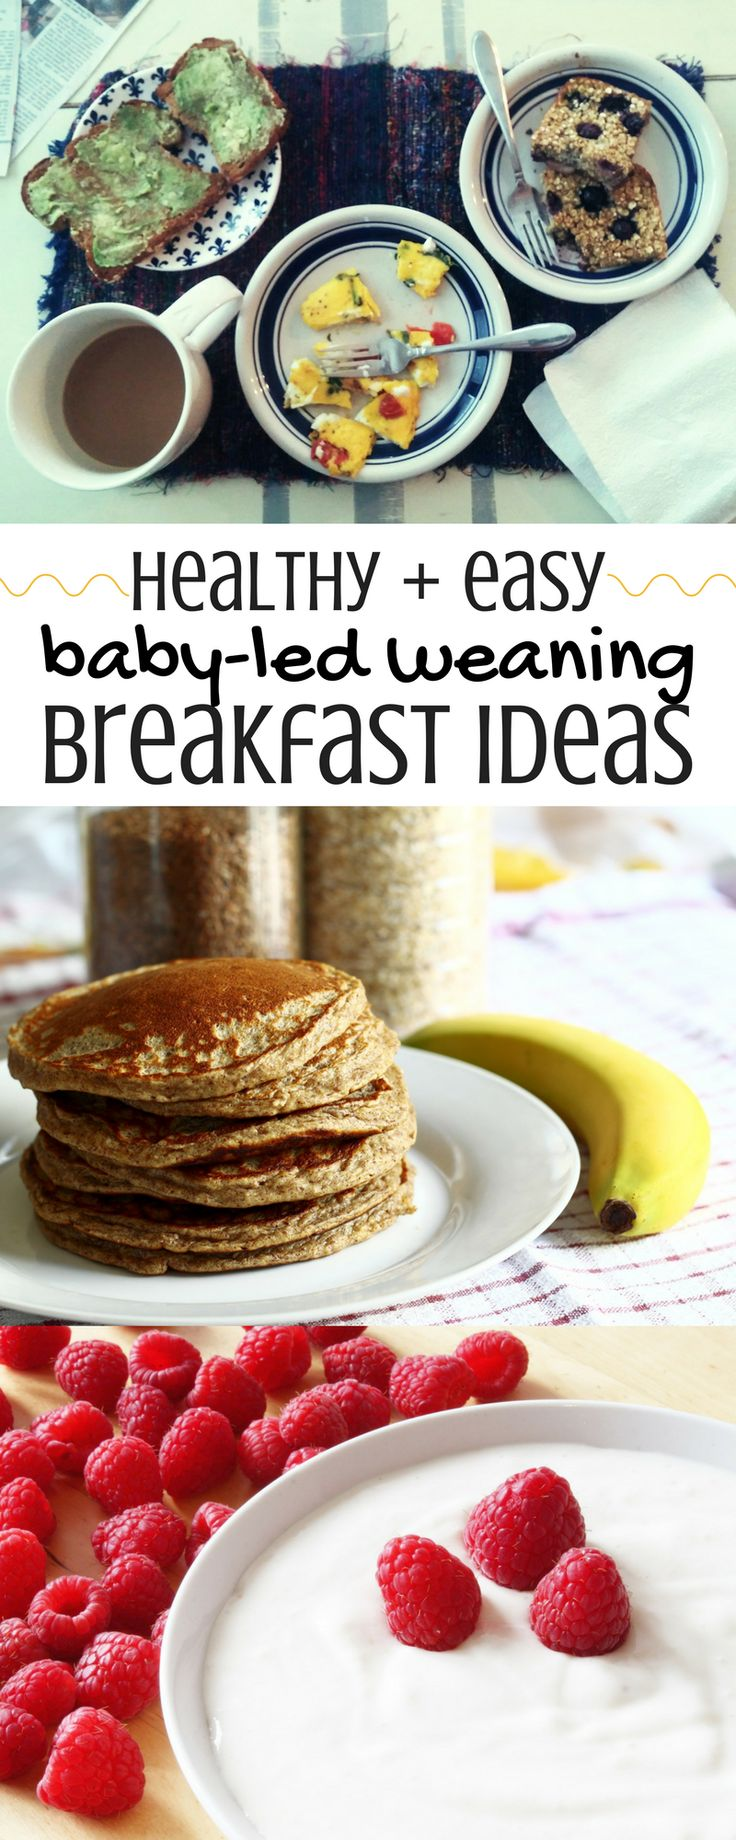 BabyLed Weaning Breakfast Ideas Baby led weaning